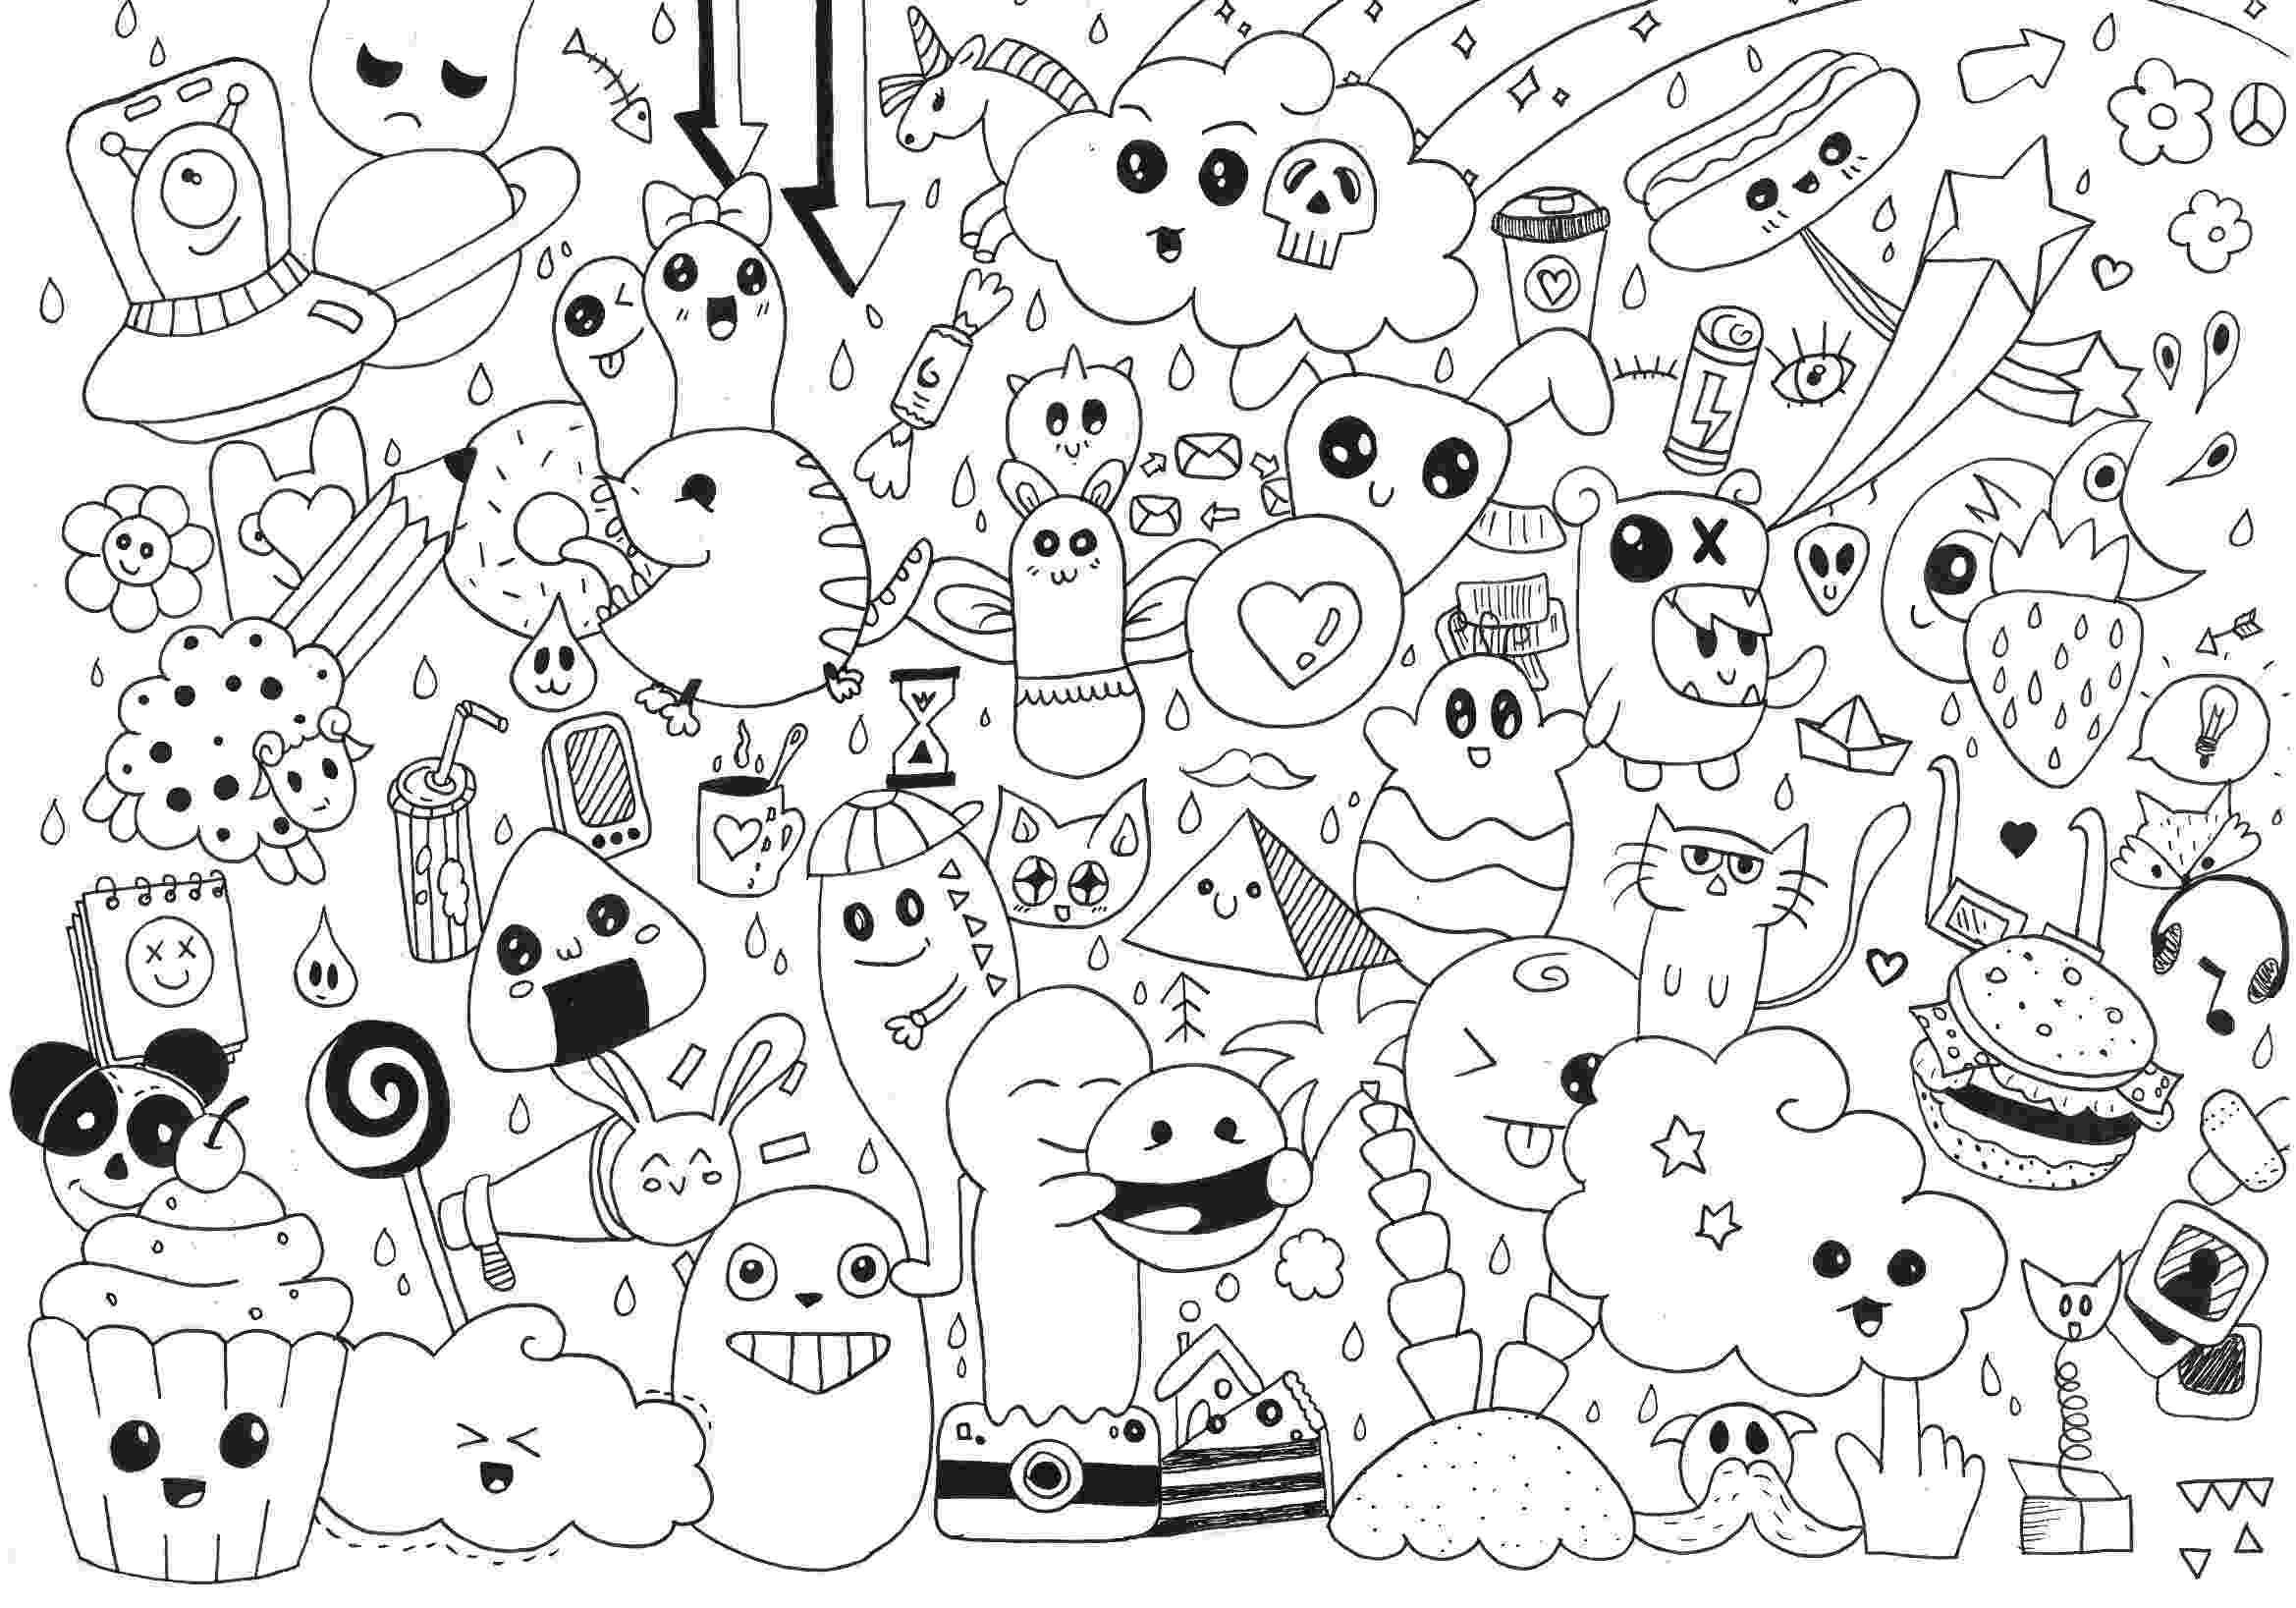 doodle art free printables doodle art free printable coloring pages for kids free printables art doodle